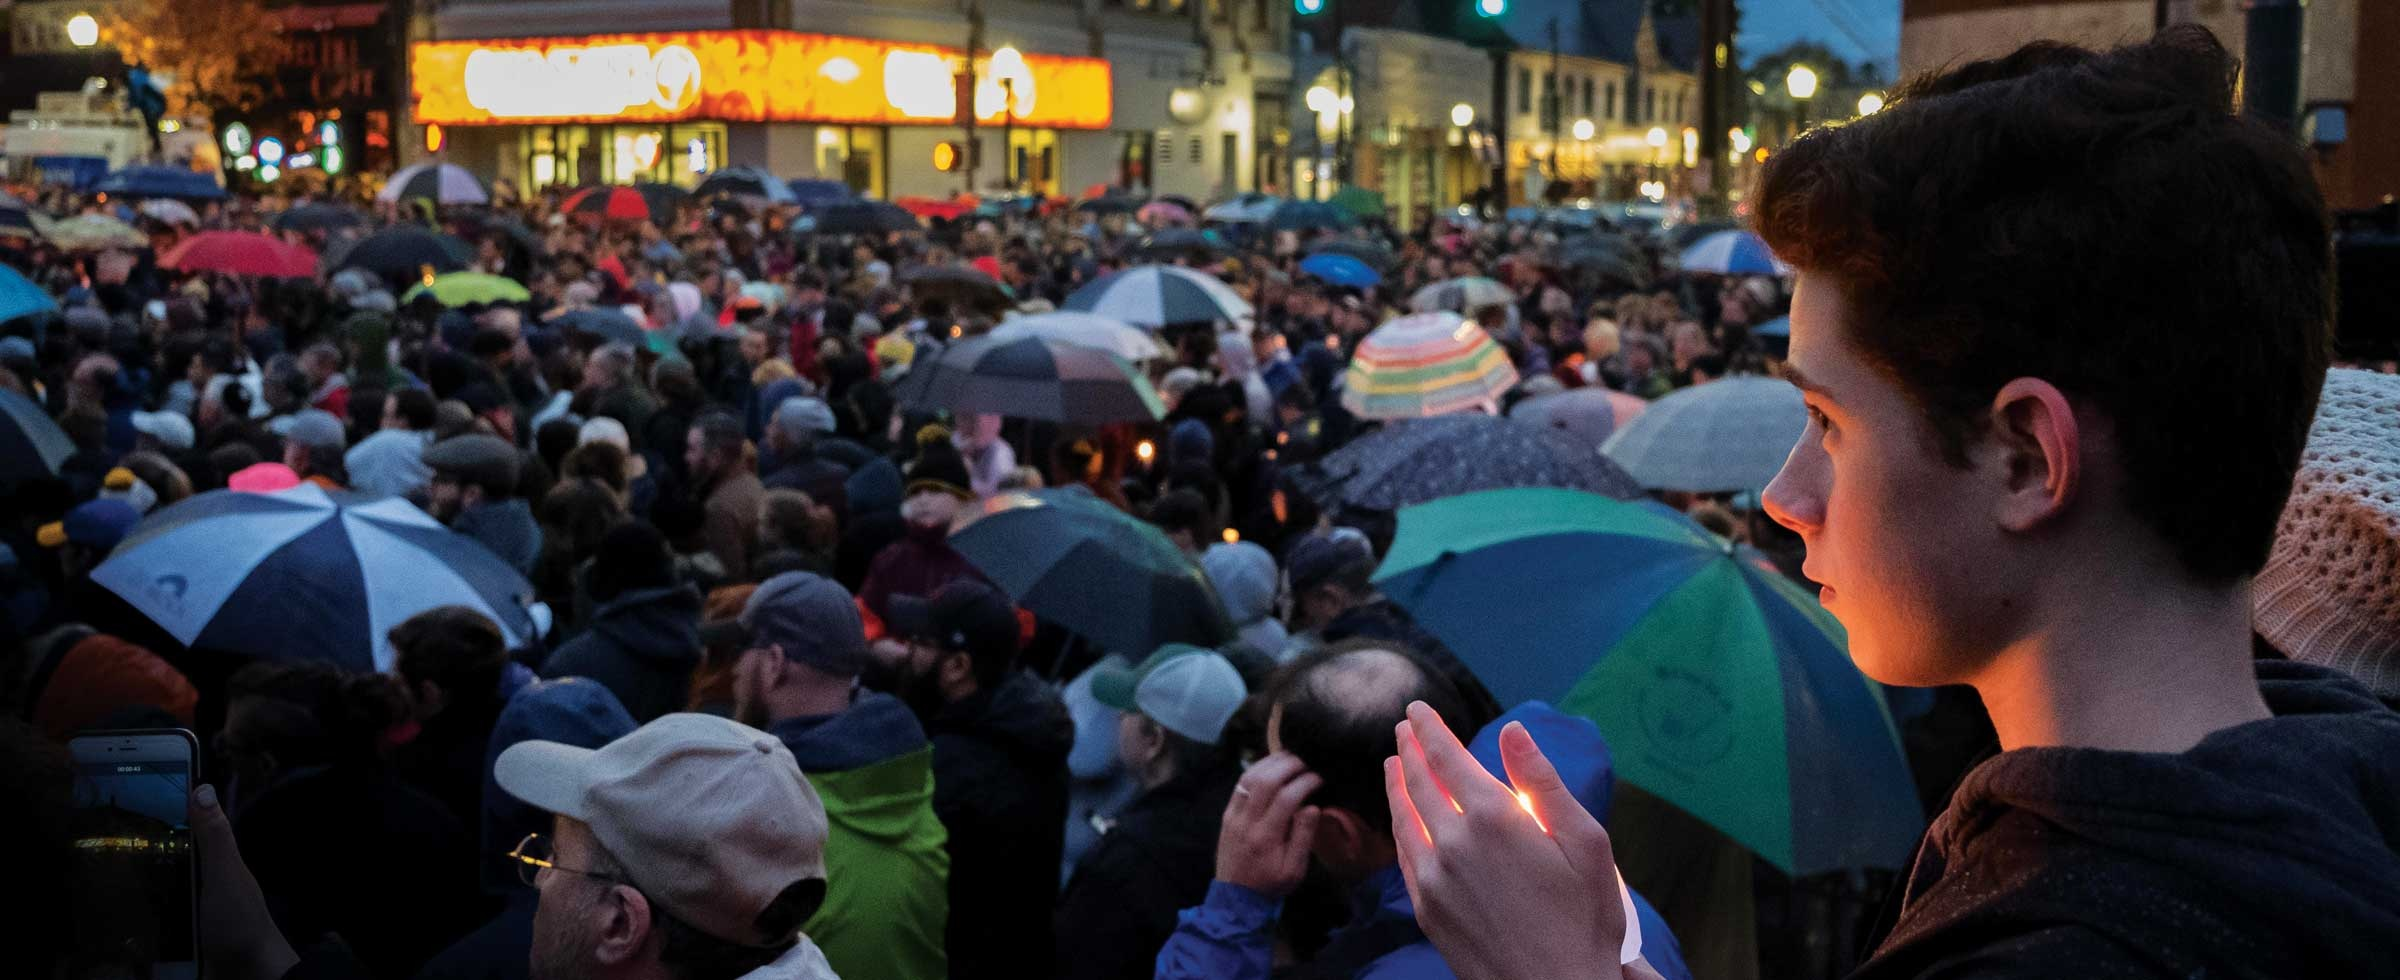 The crowd at an October march against hatred and violence in response to the mass shooting at Tree of Life synagogue in Pittsburgh.